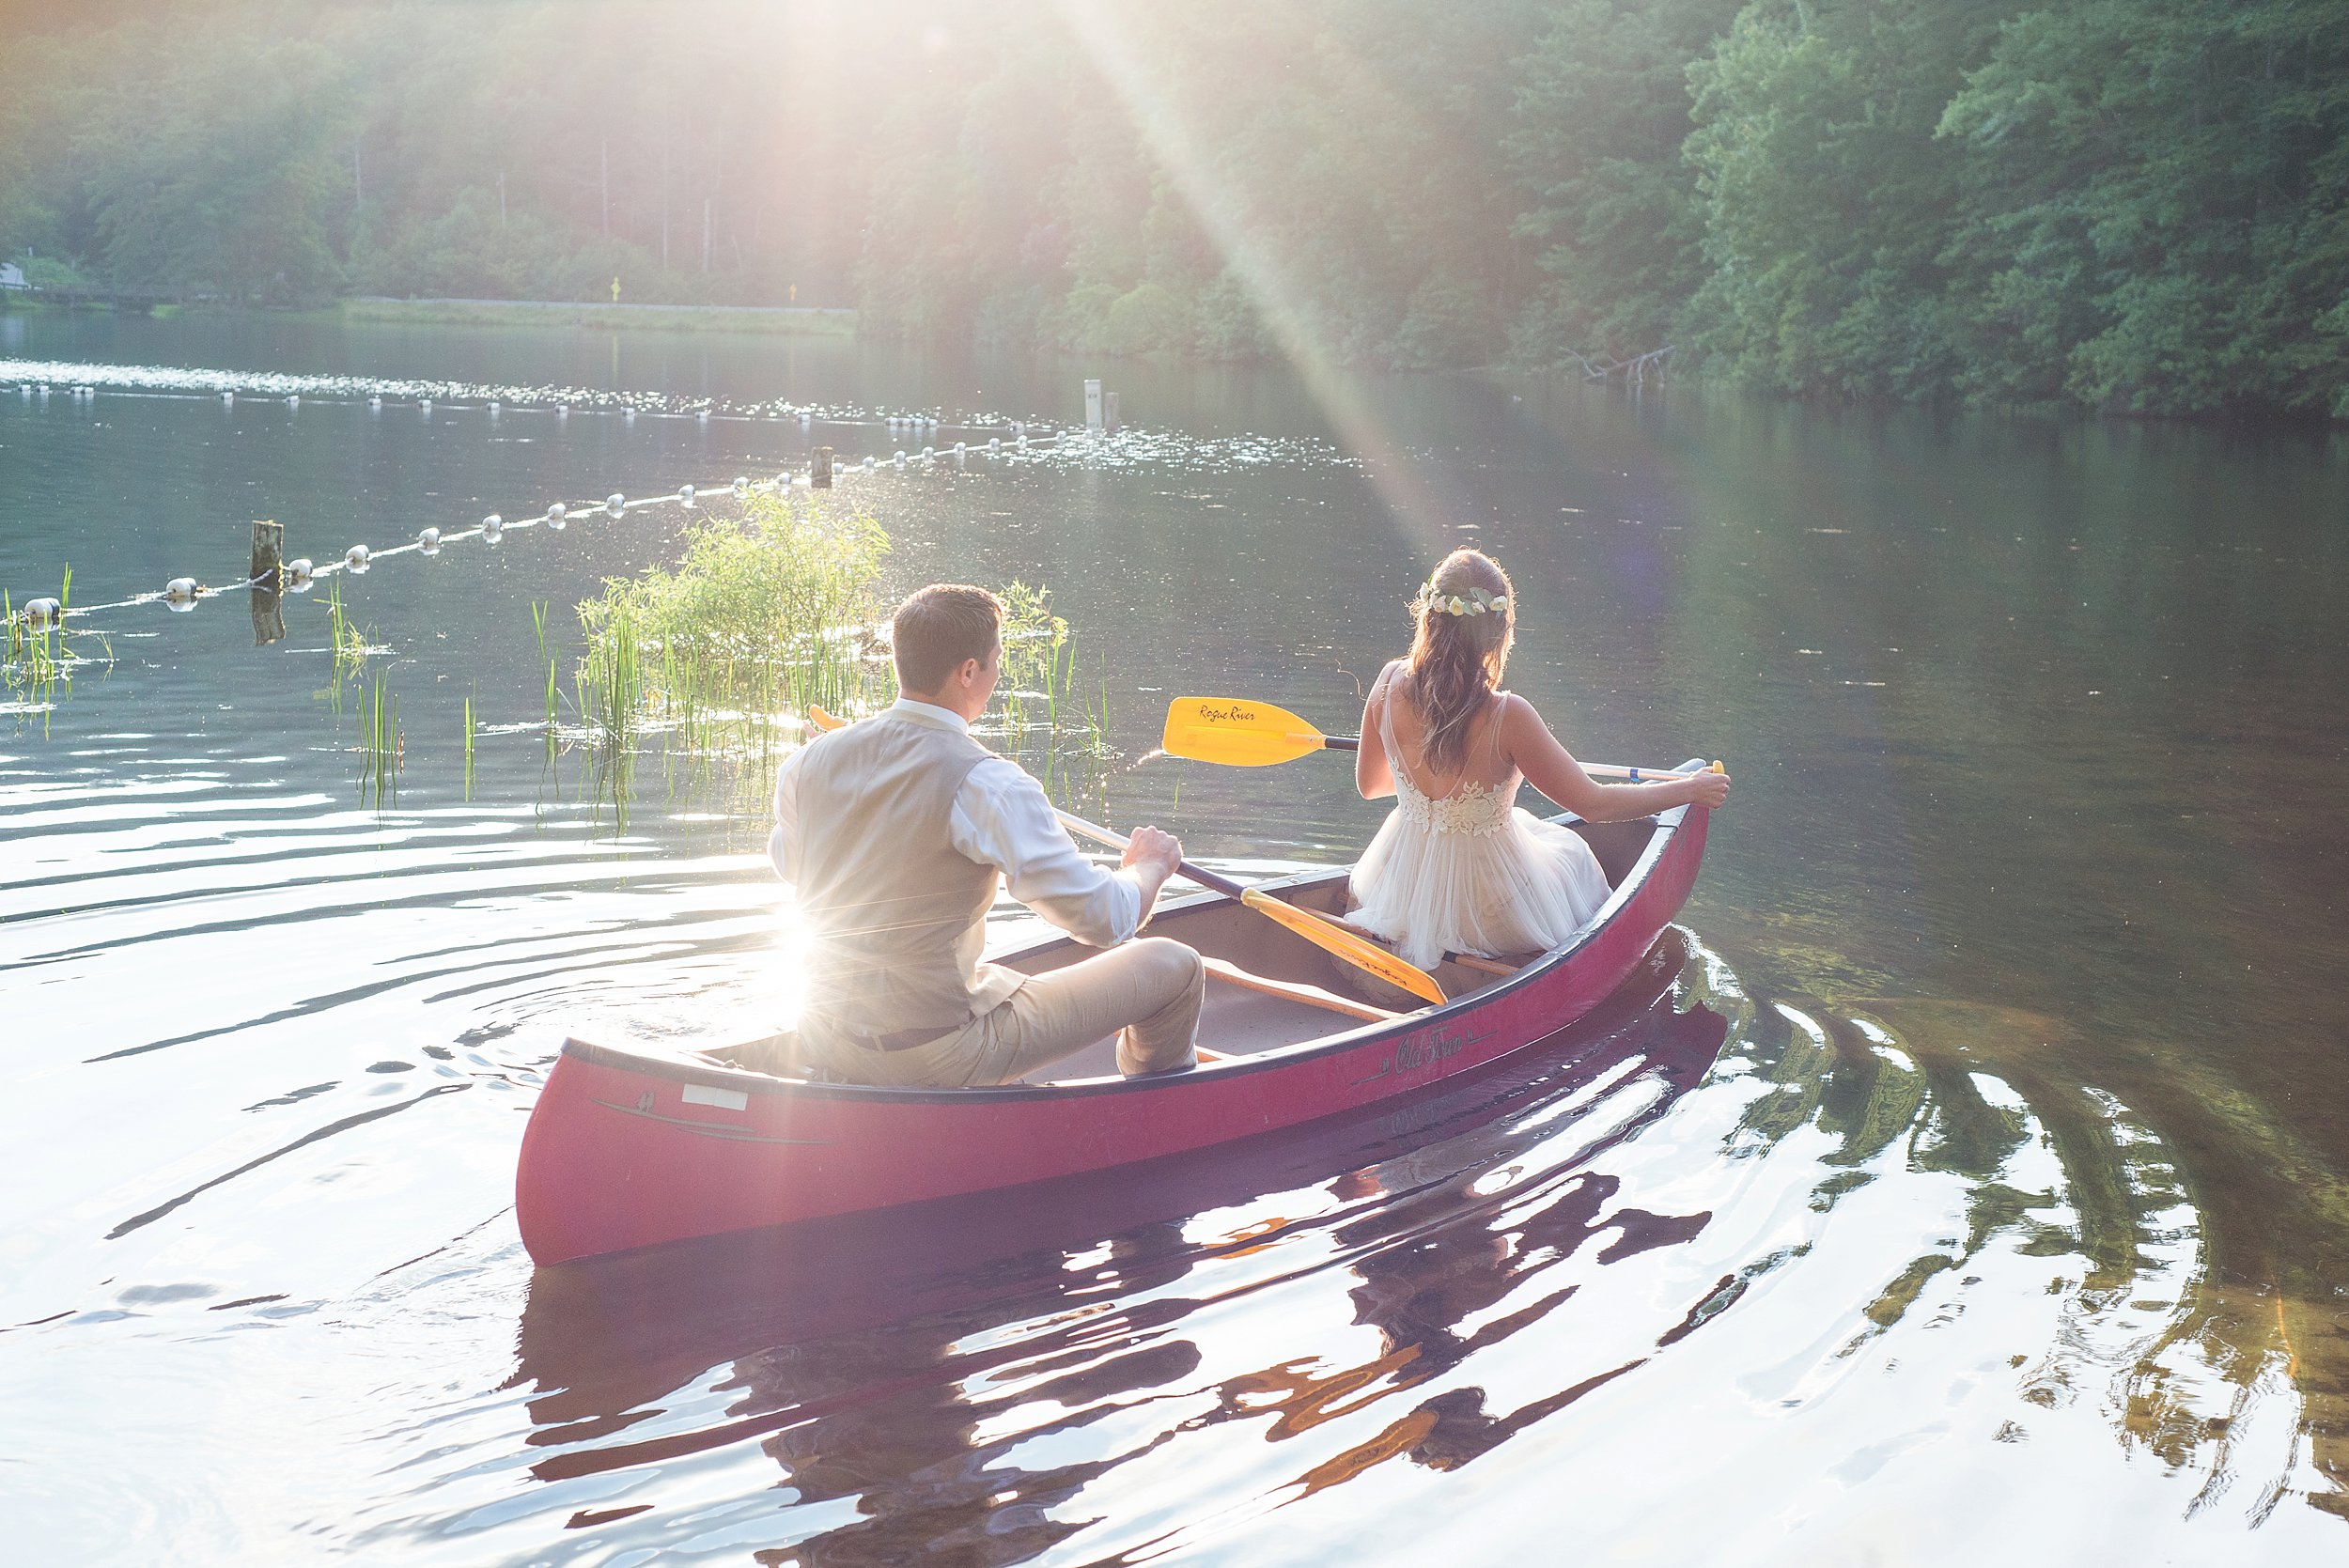 Had to take the canoe out for a spin! I LOVE these photos. It's been a huge dream of mine to take canoe photos at a wedding. These absolutely made my day!